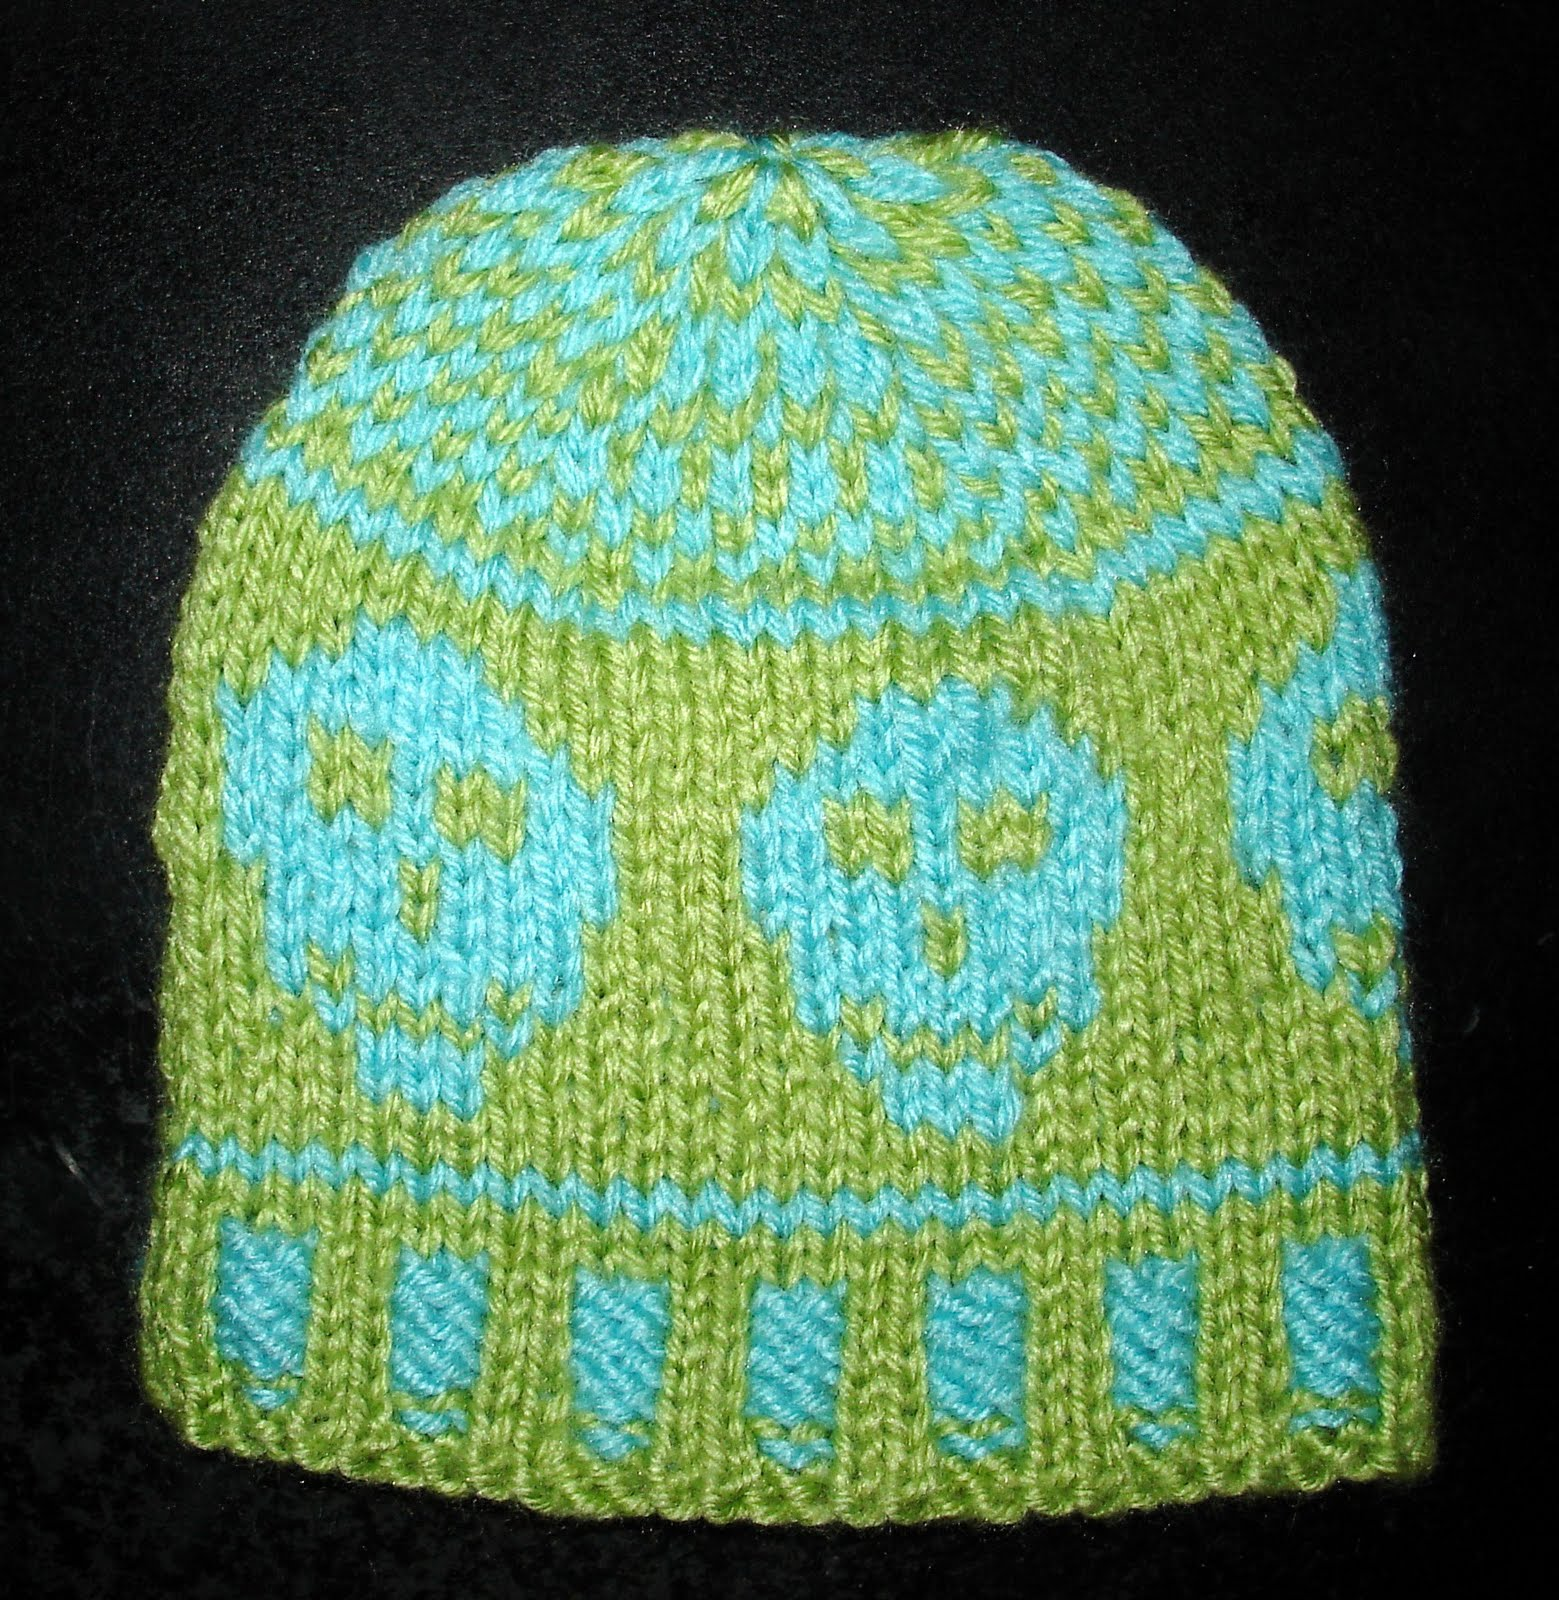 Knitted Skull Hat Pattern : SmoothFox Crochet and Knit: SmoothFoxs Happy Skull Hat for Little Pirate...